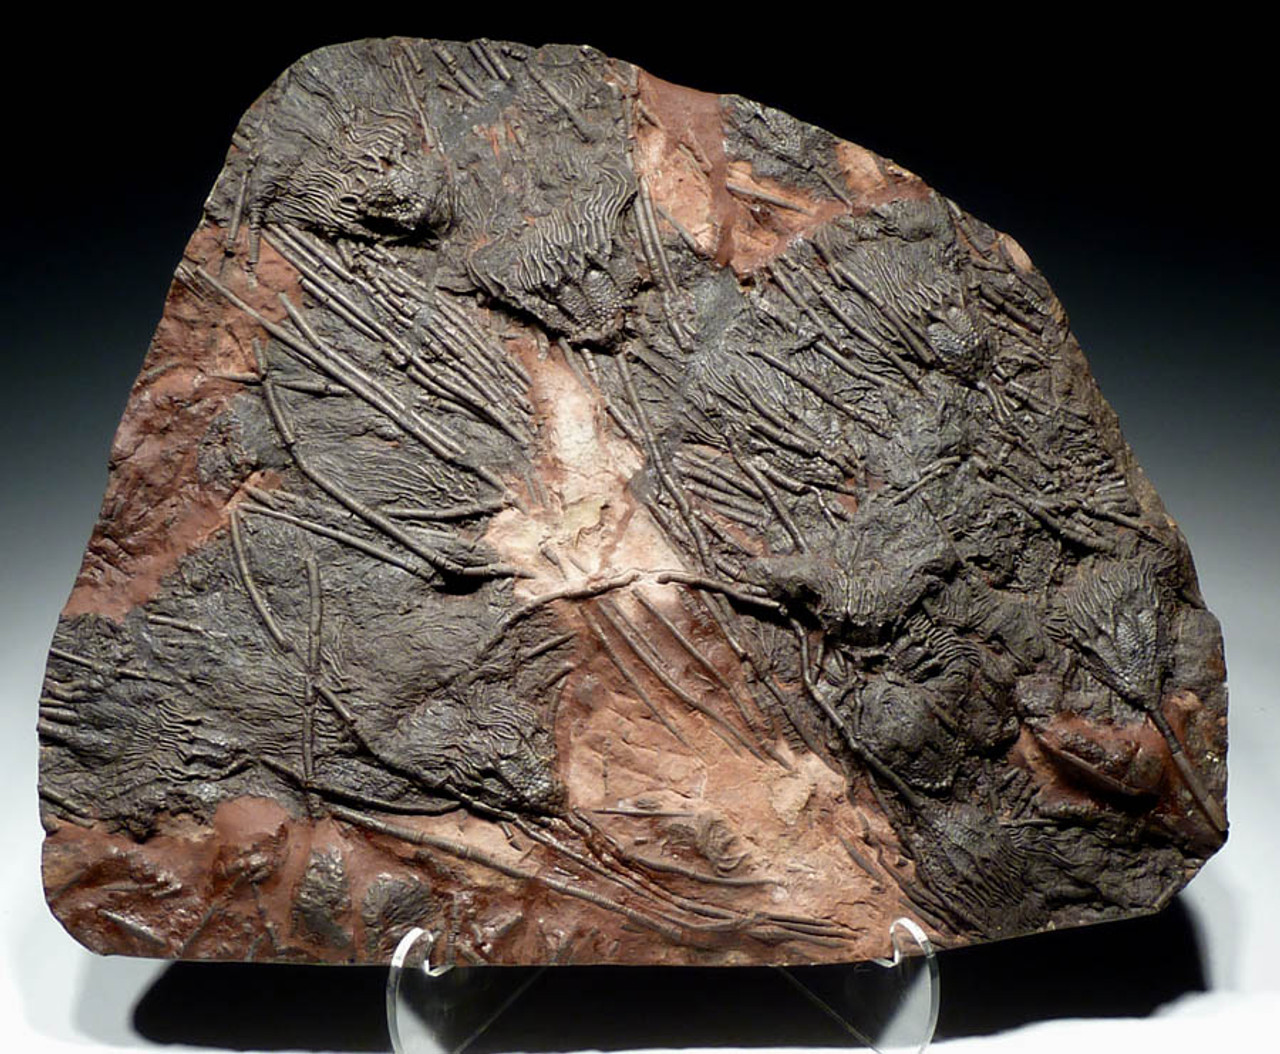 CRI019 - SHOWPIECE VERY LARGE INTERIOR DESIGN FOSSIL WITH PRESERVED PREHISTORIC SEA LILIES ANCIENT OCEAN FLOOR ROCK